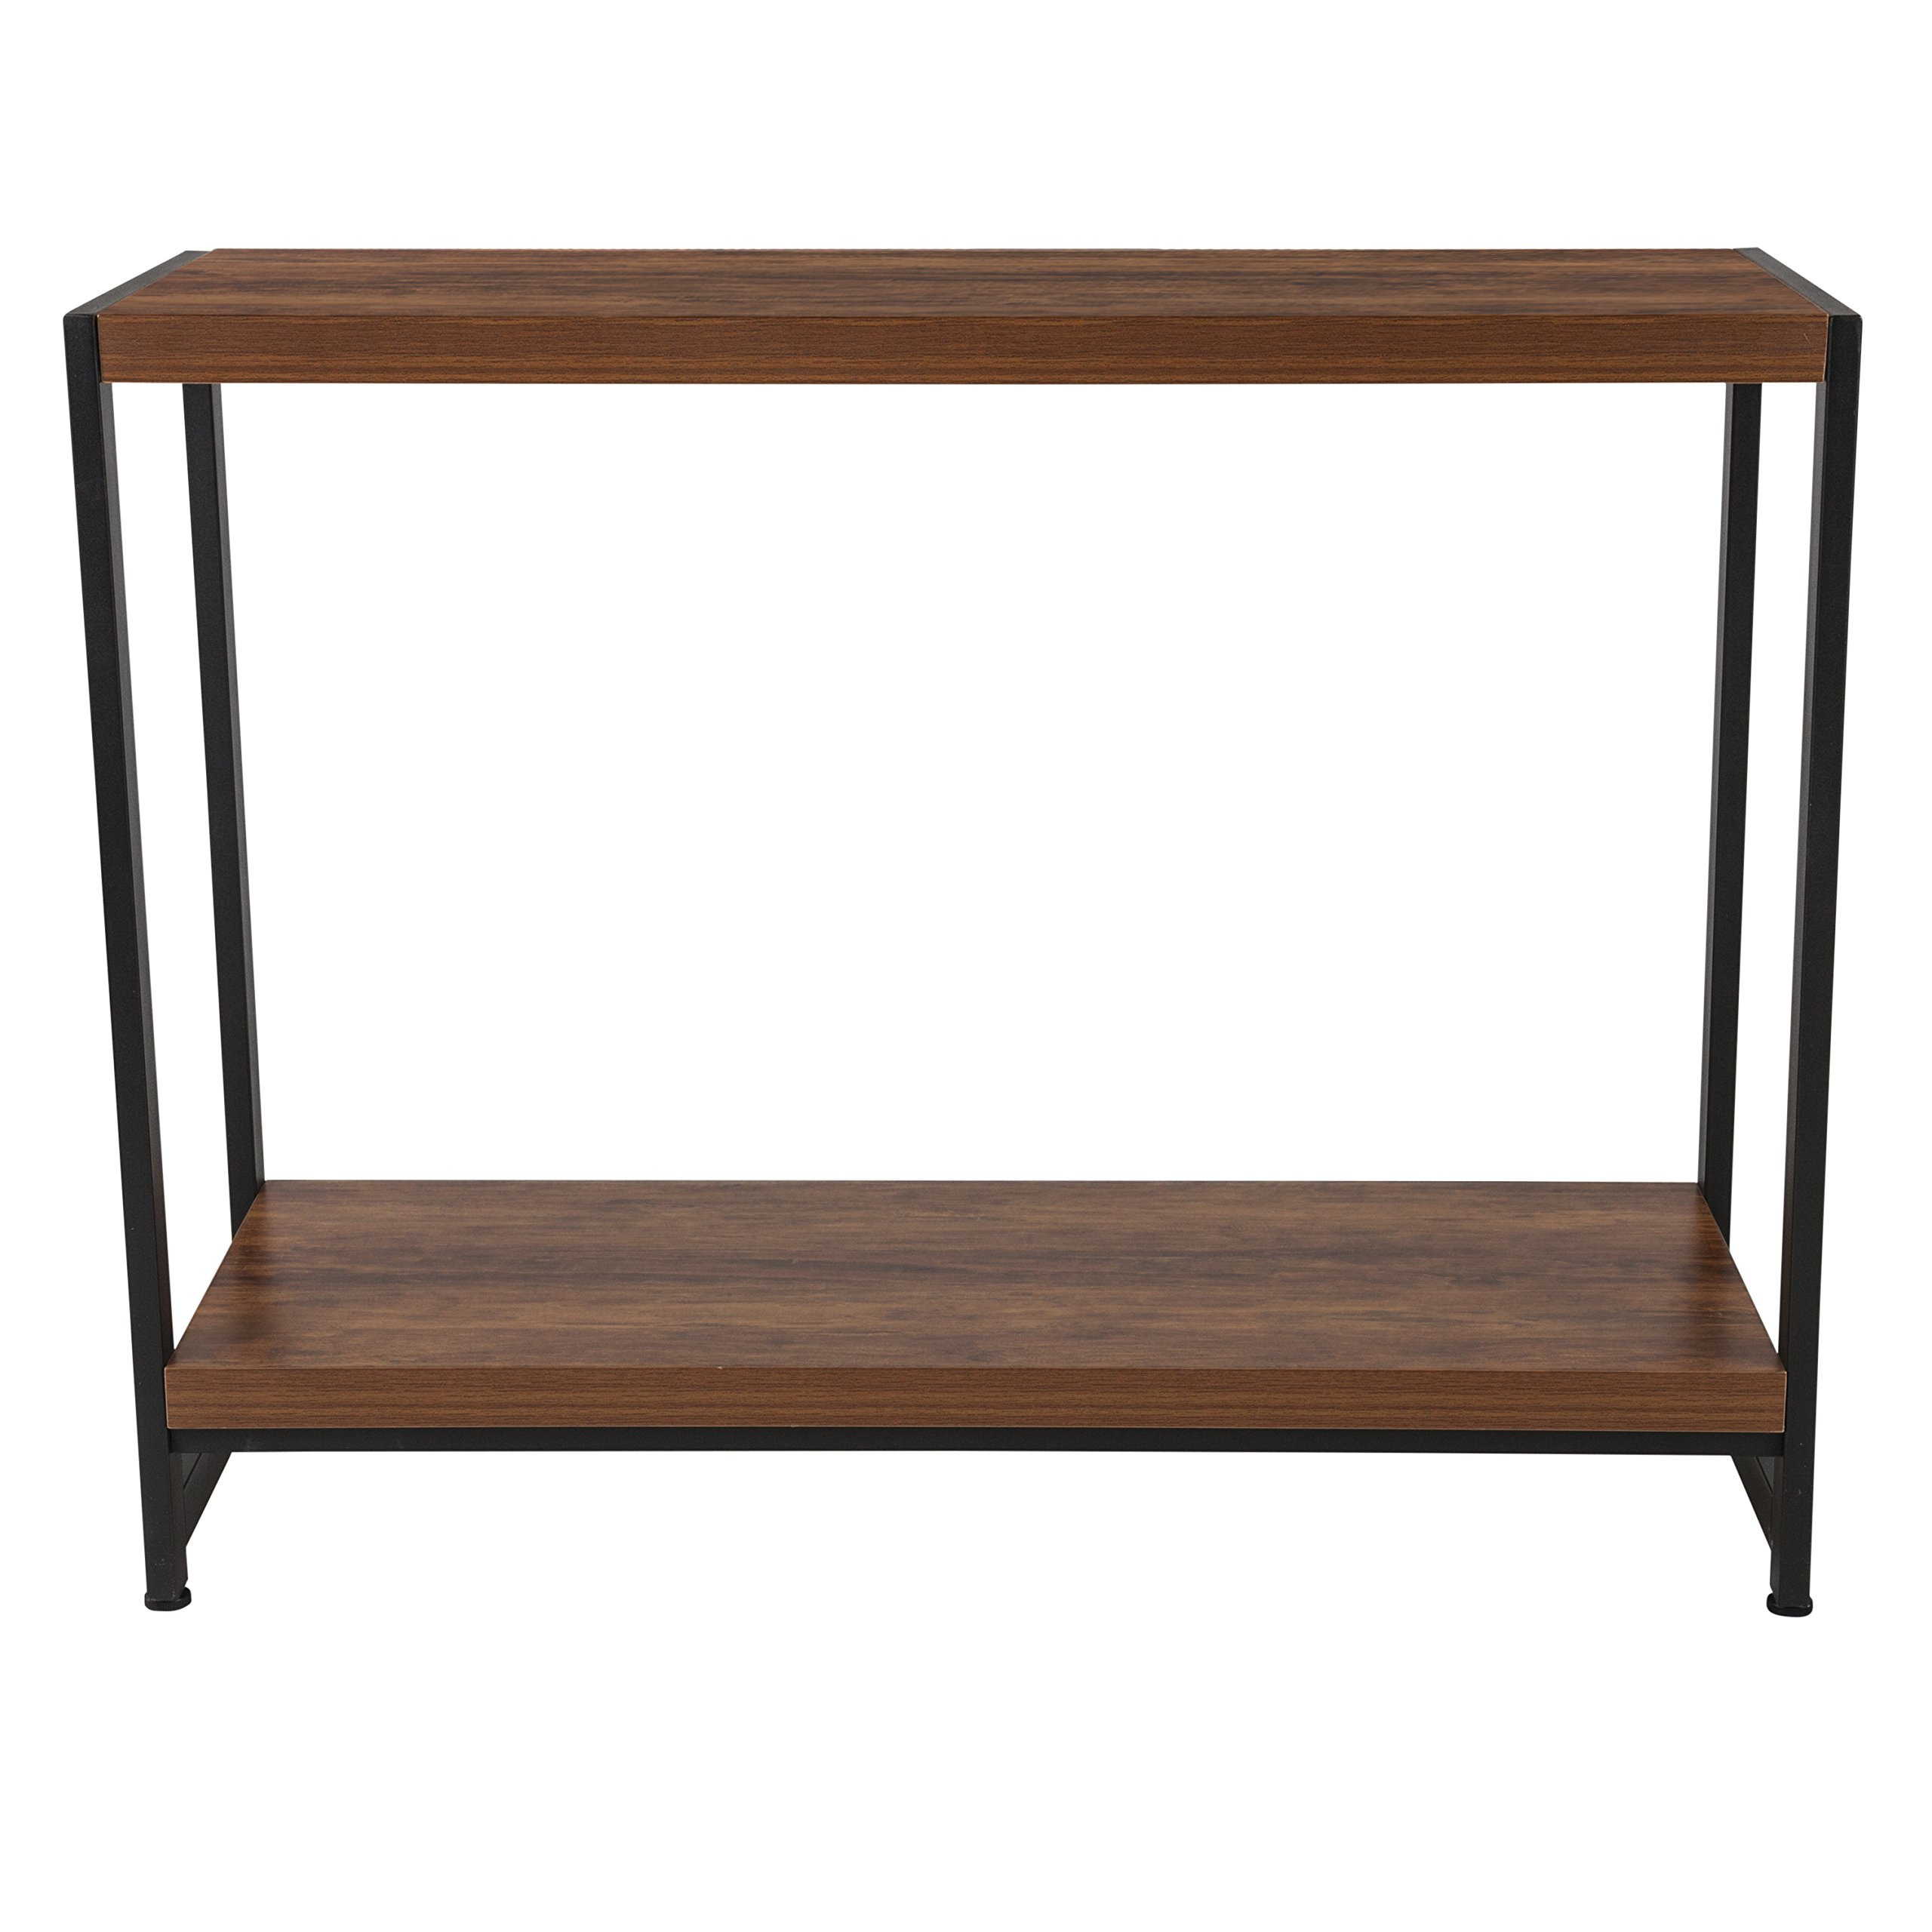 Flash Furniture Grove Hill Collection Rustic Wood Grain Finish Console Table with Black Metal Frame by Flash Furniture (Image #2)